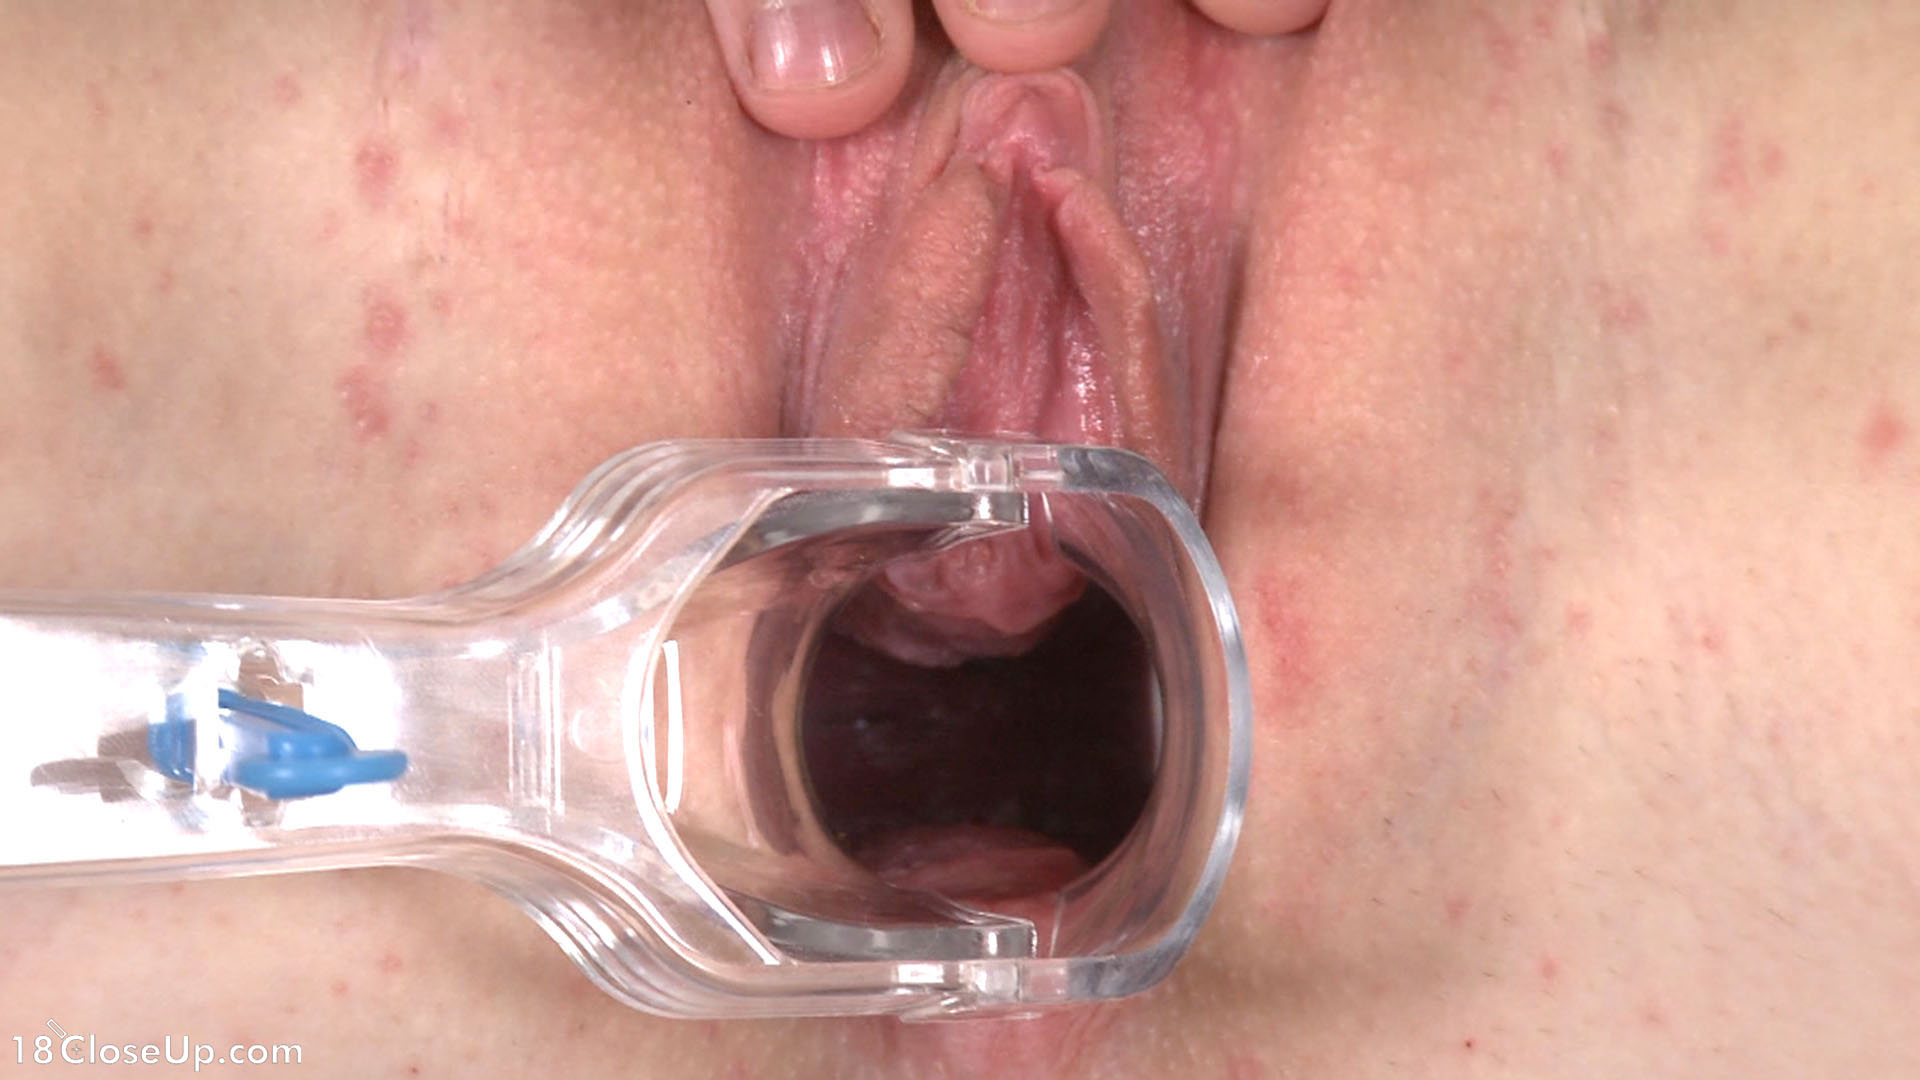 inside of a vagina during sex